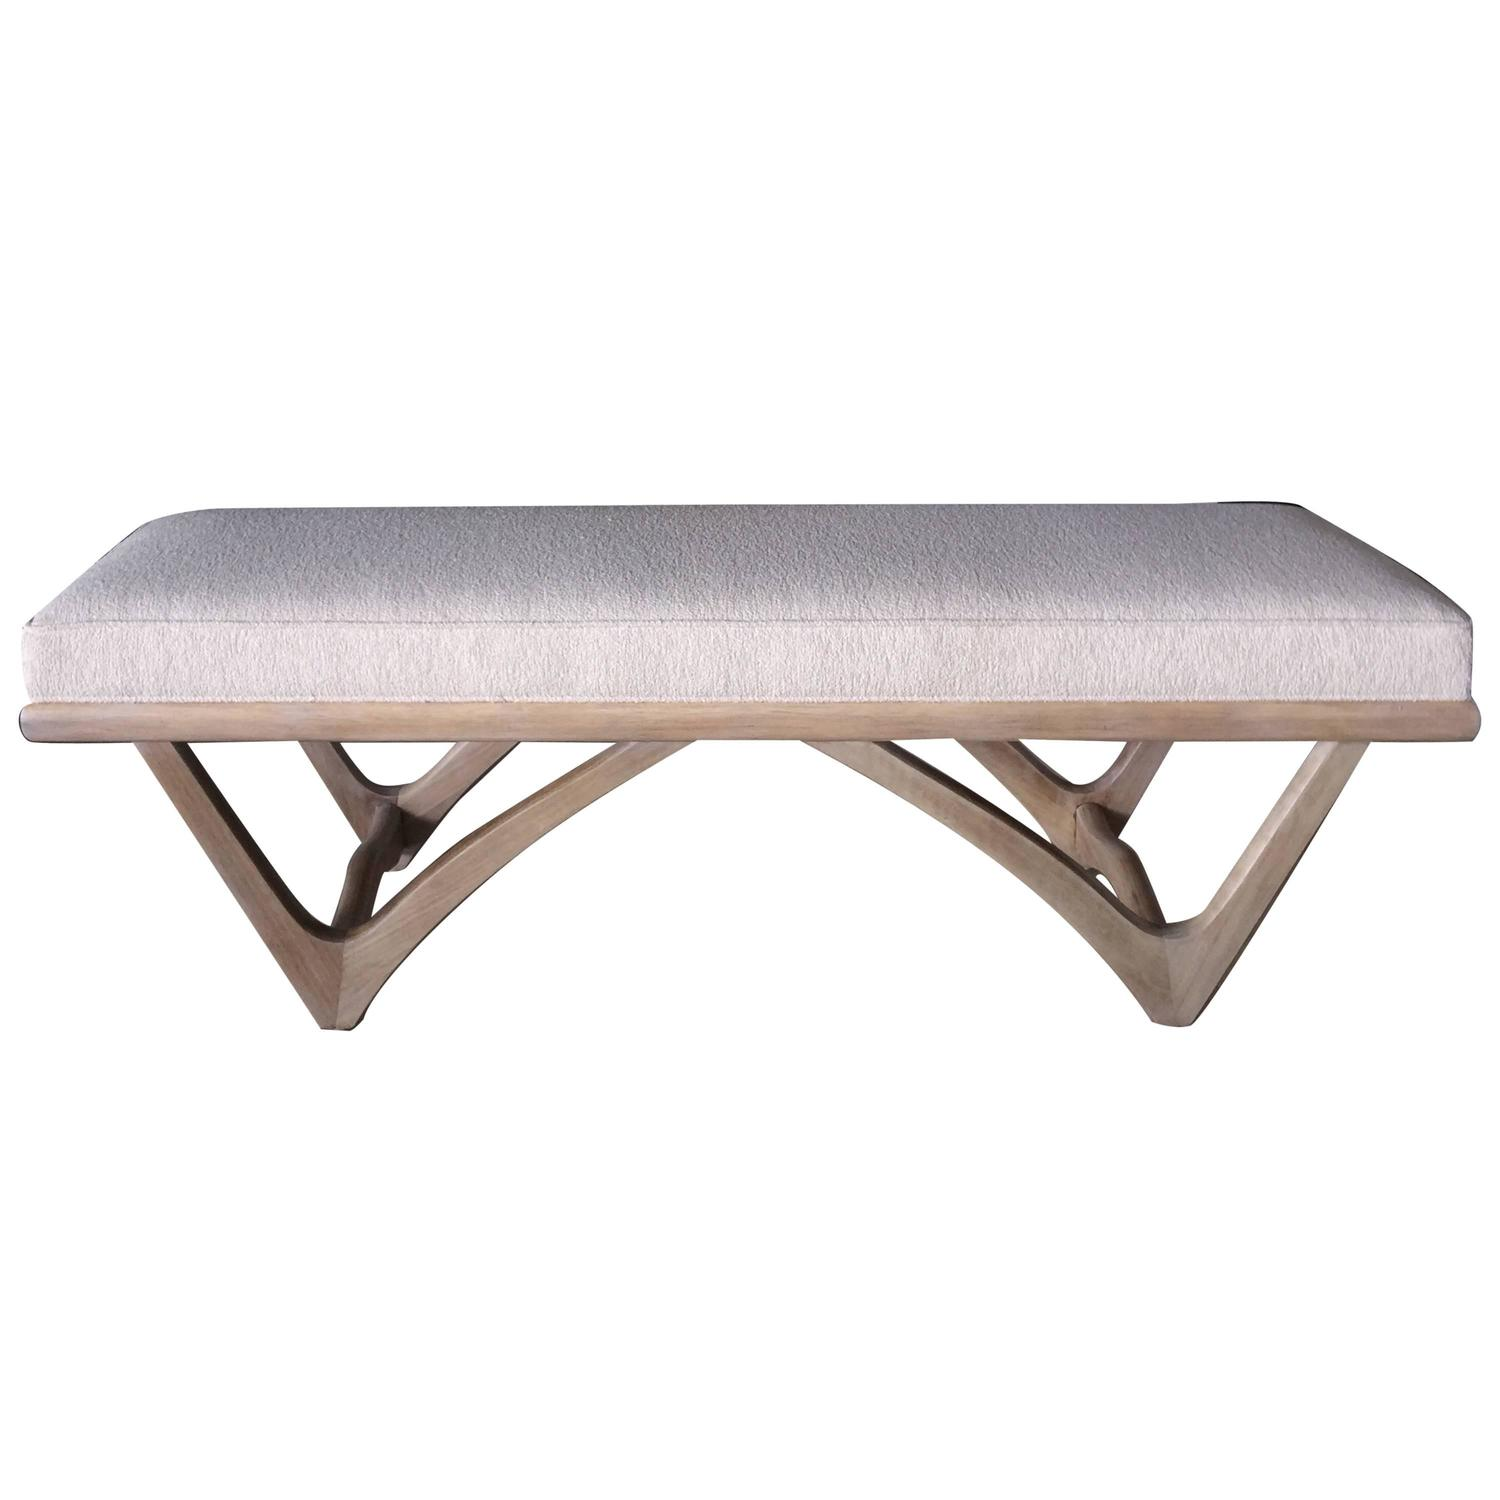 Mid Century Bench In Style Of Pearsall At 1stdibs